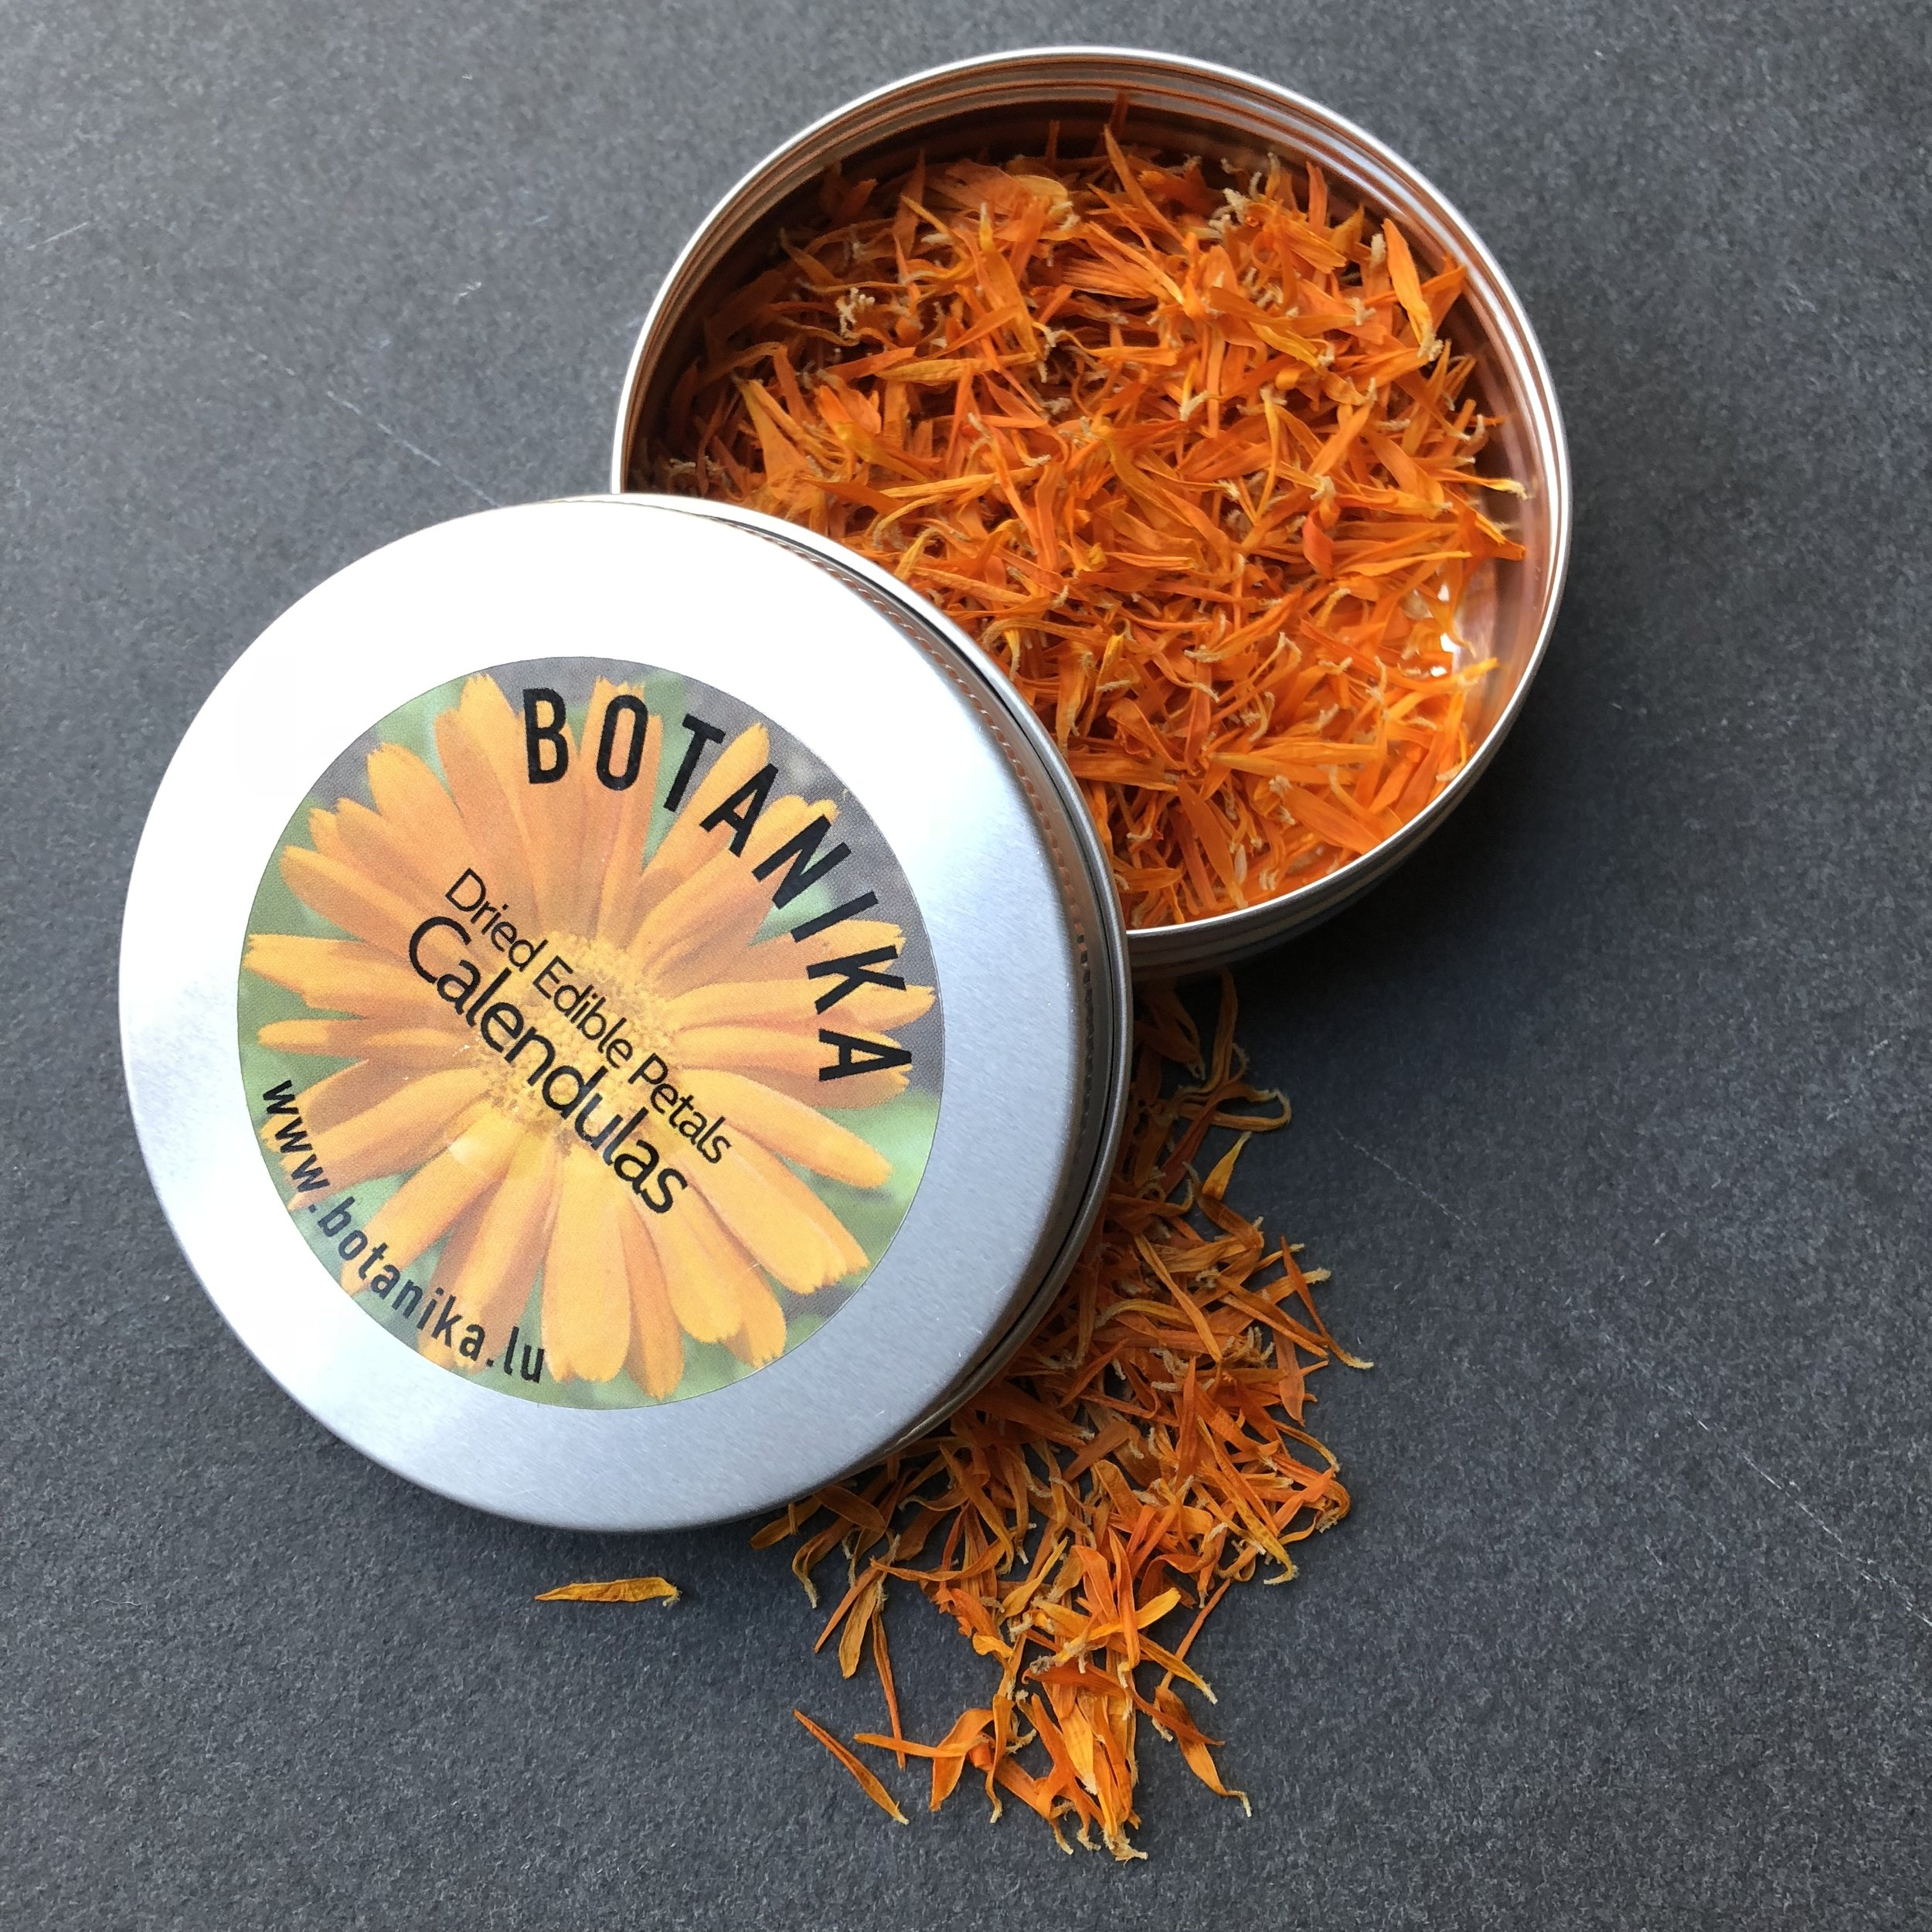 REF:15  'calendula officinalis'  Calendula séché, dried calendula petals  flower petals can be scattered over salads, cakes. add to pasta dough or cocktails.